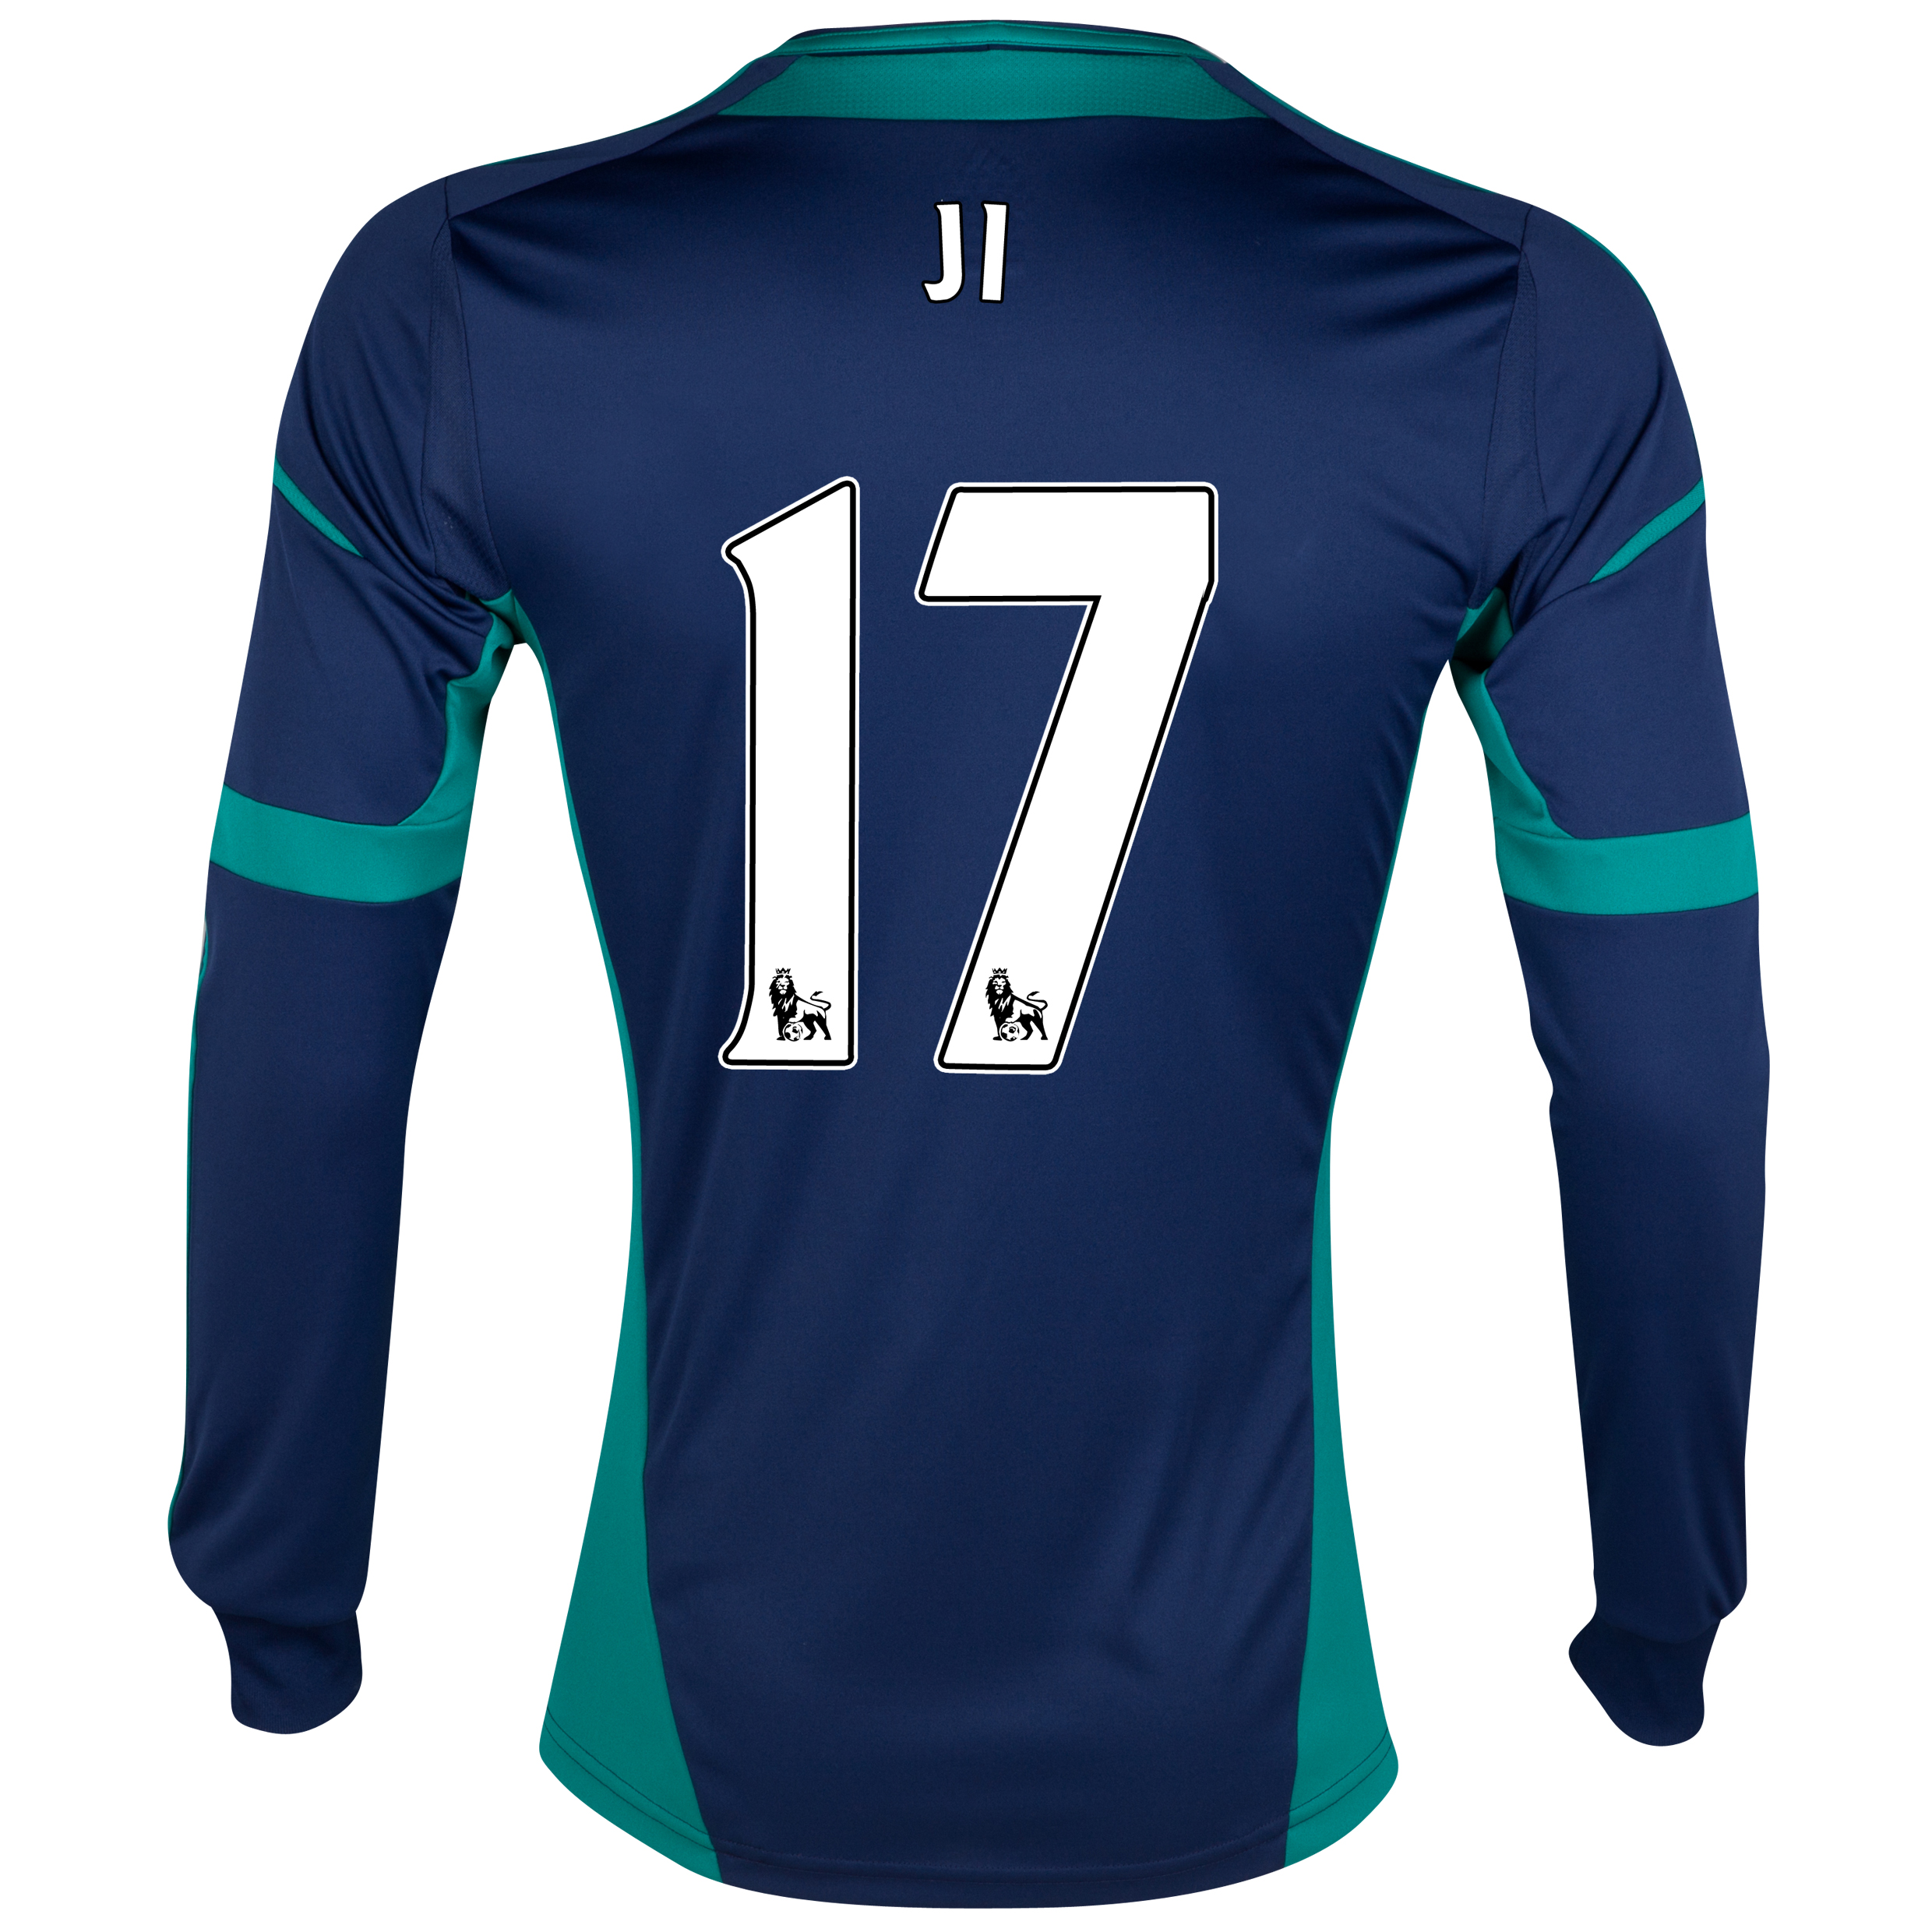 Sunderland Away Shirt 2012/13 - Long Sleeved with Ji 17 printing